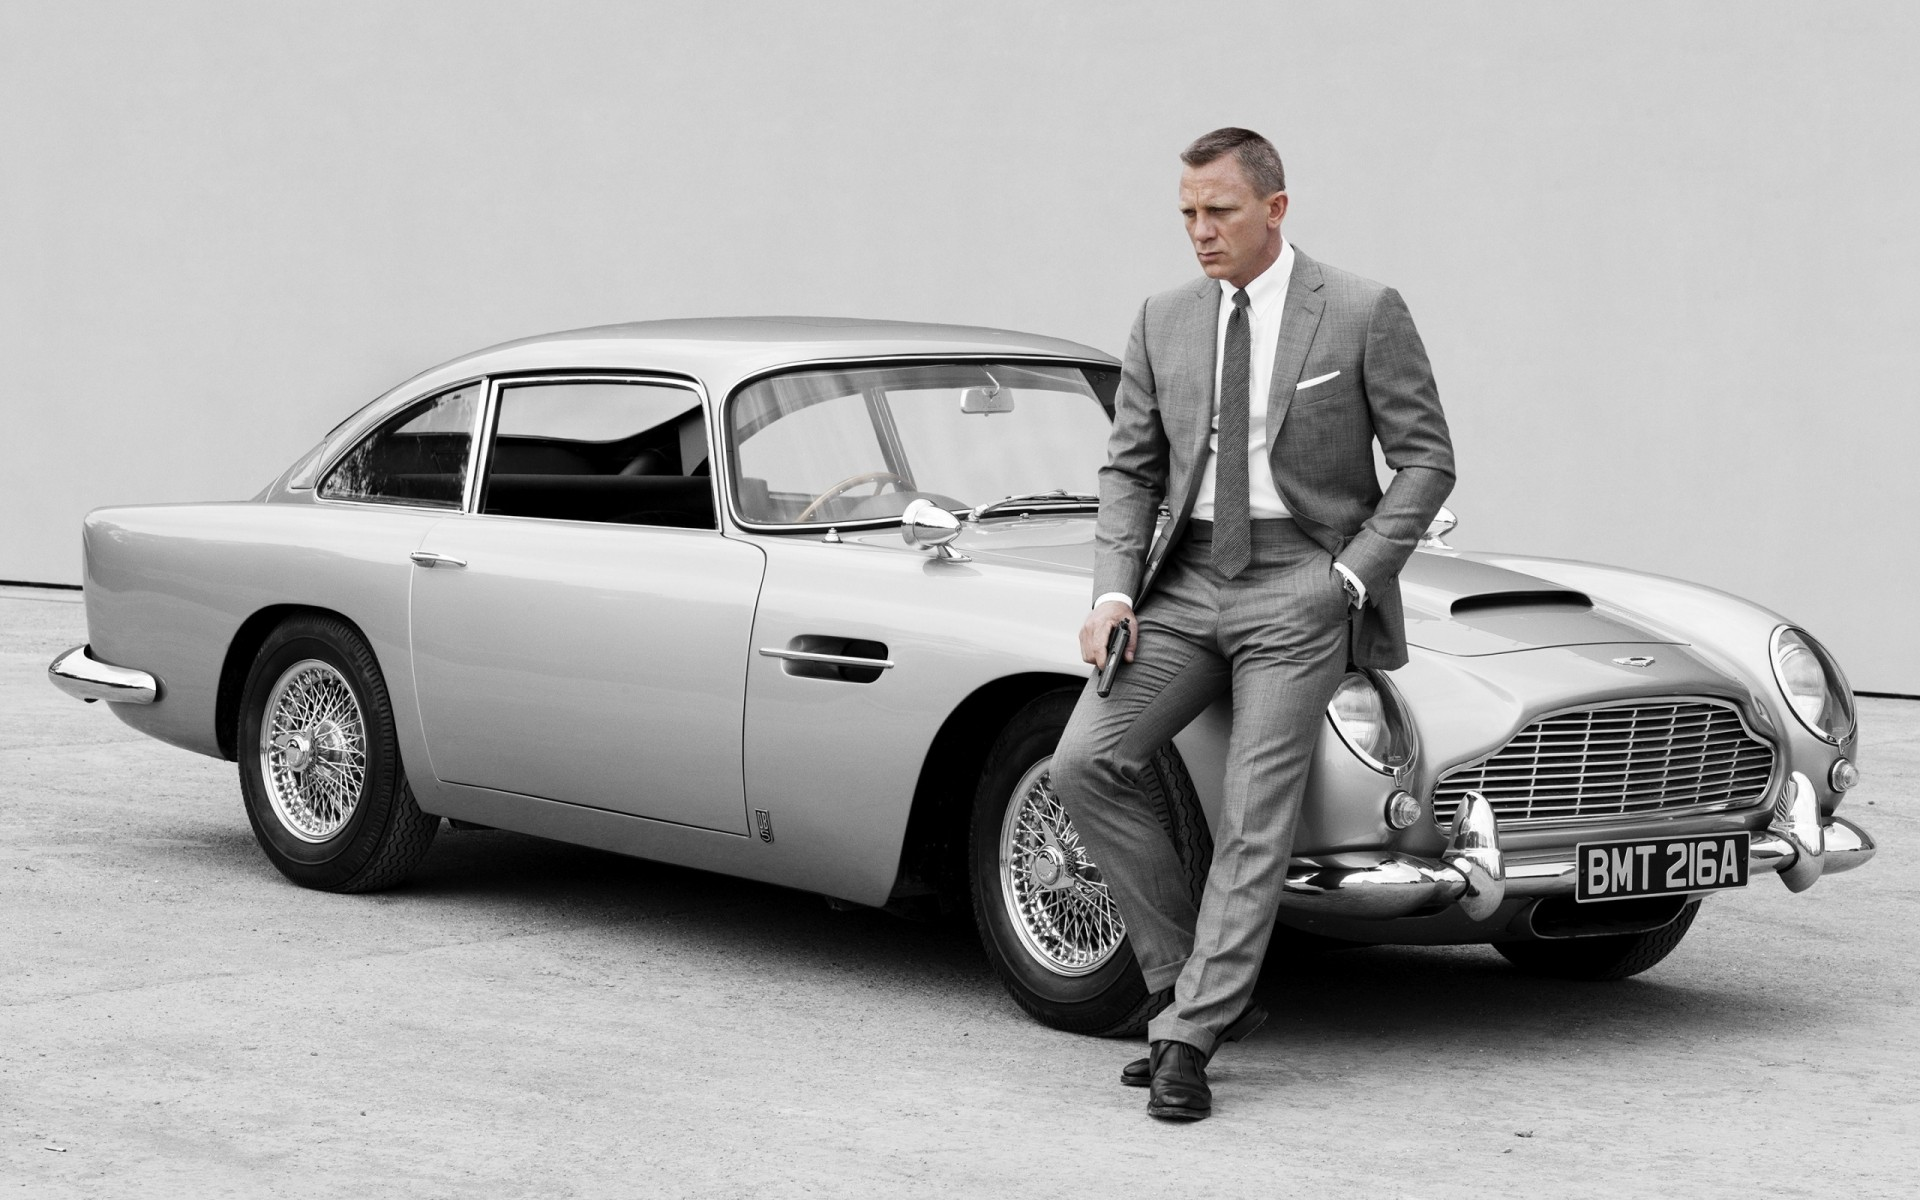 movies car vehicle transportation system convertible wheel automotive james bond 007 skyfall daniel craig aston martin